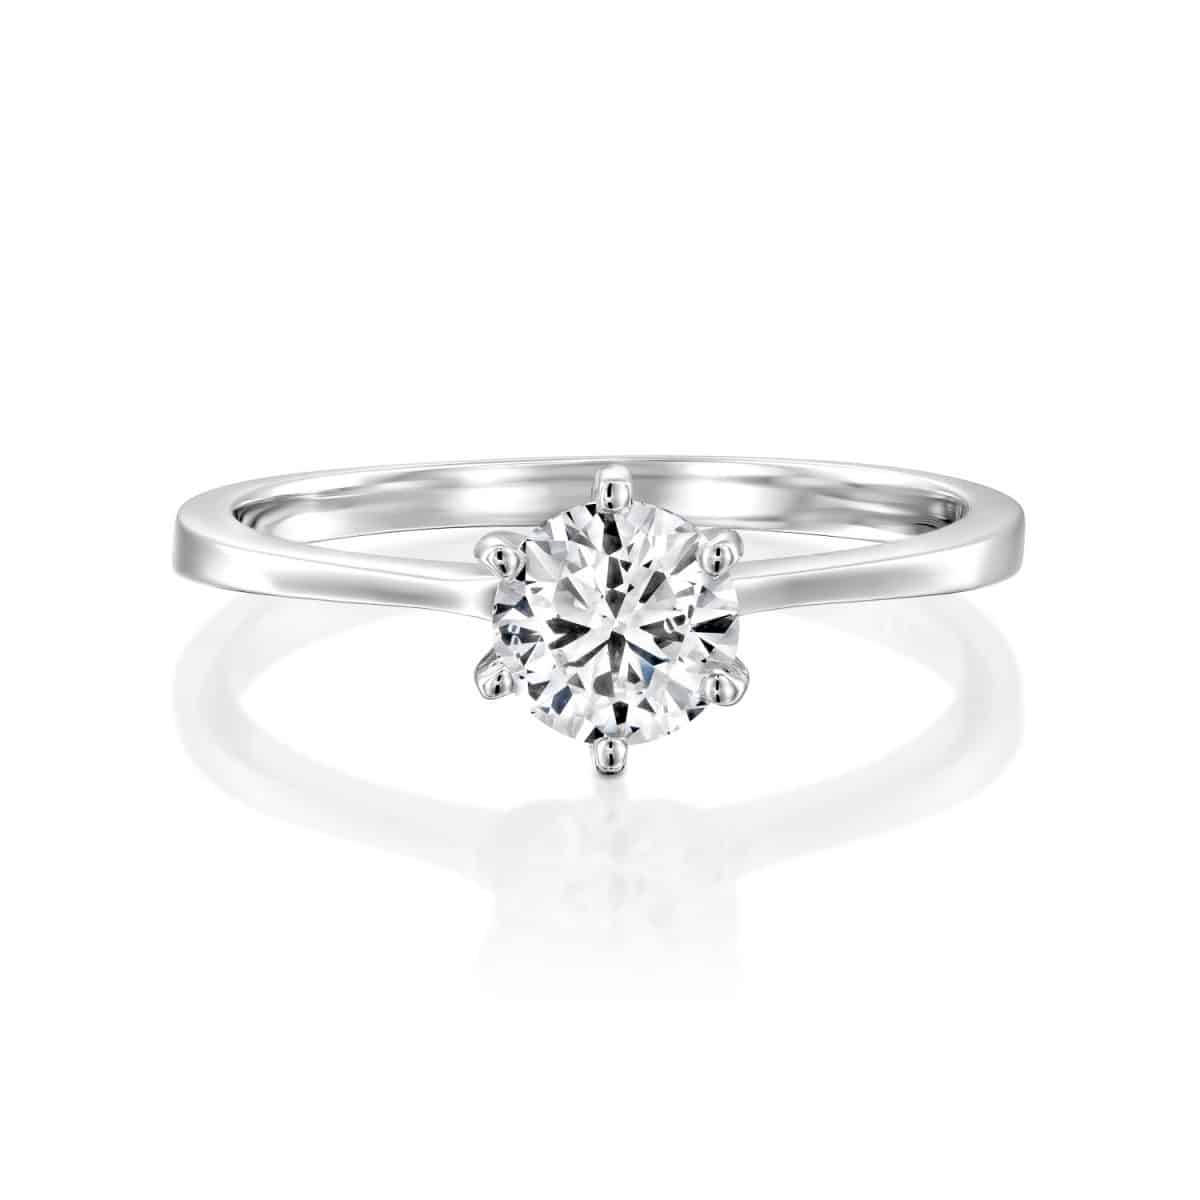 Shannon - White Gold Lab Grown Diamond Engagement Ring 0.41ct. - laying